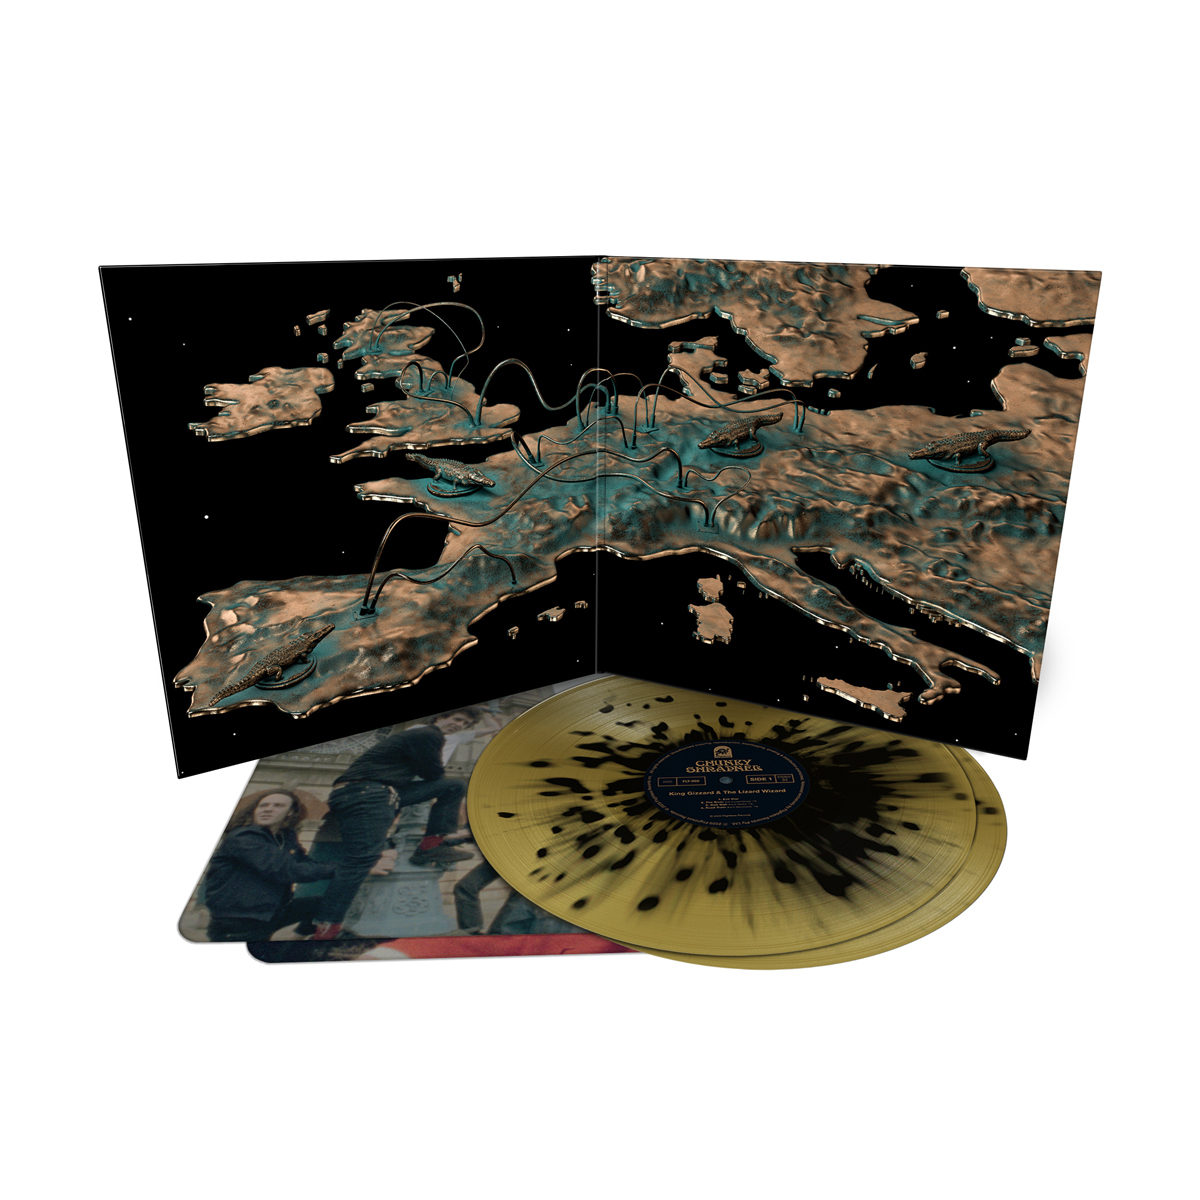 King Gizzard & The Lizard Wizard - Chunky Shrapnel (Vomit Bomb Edition) Colored Vinyl